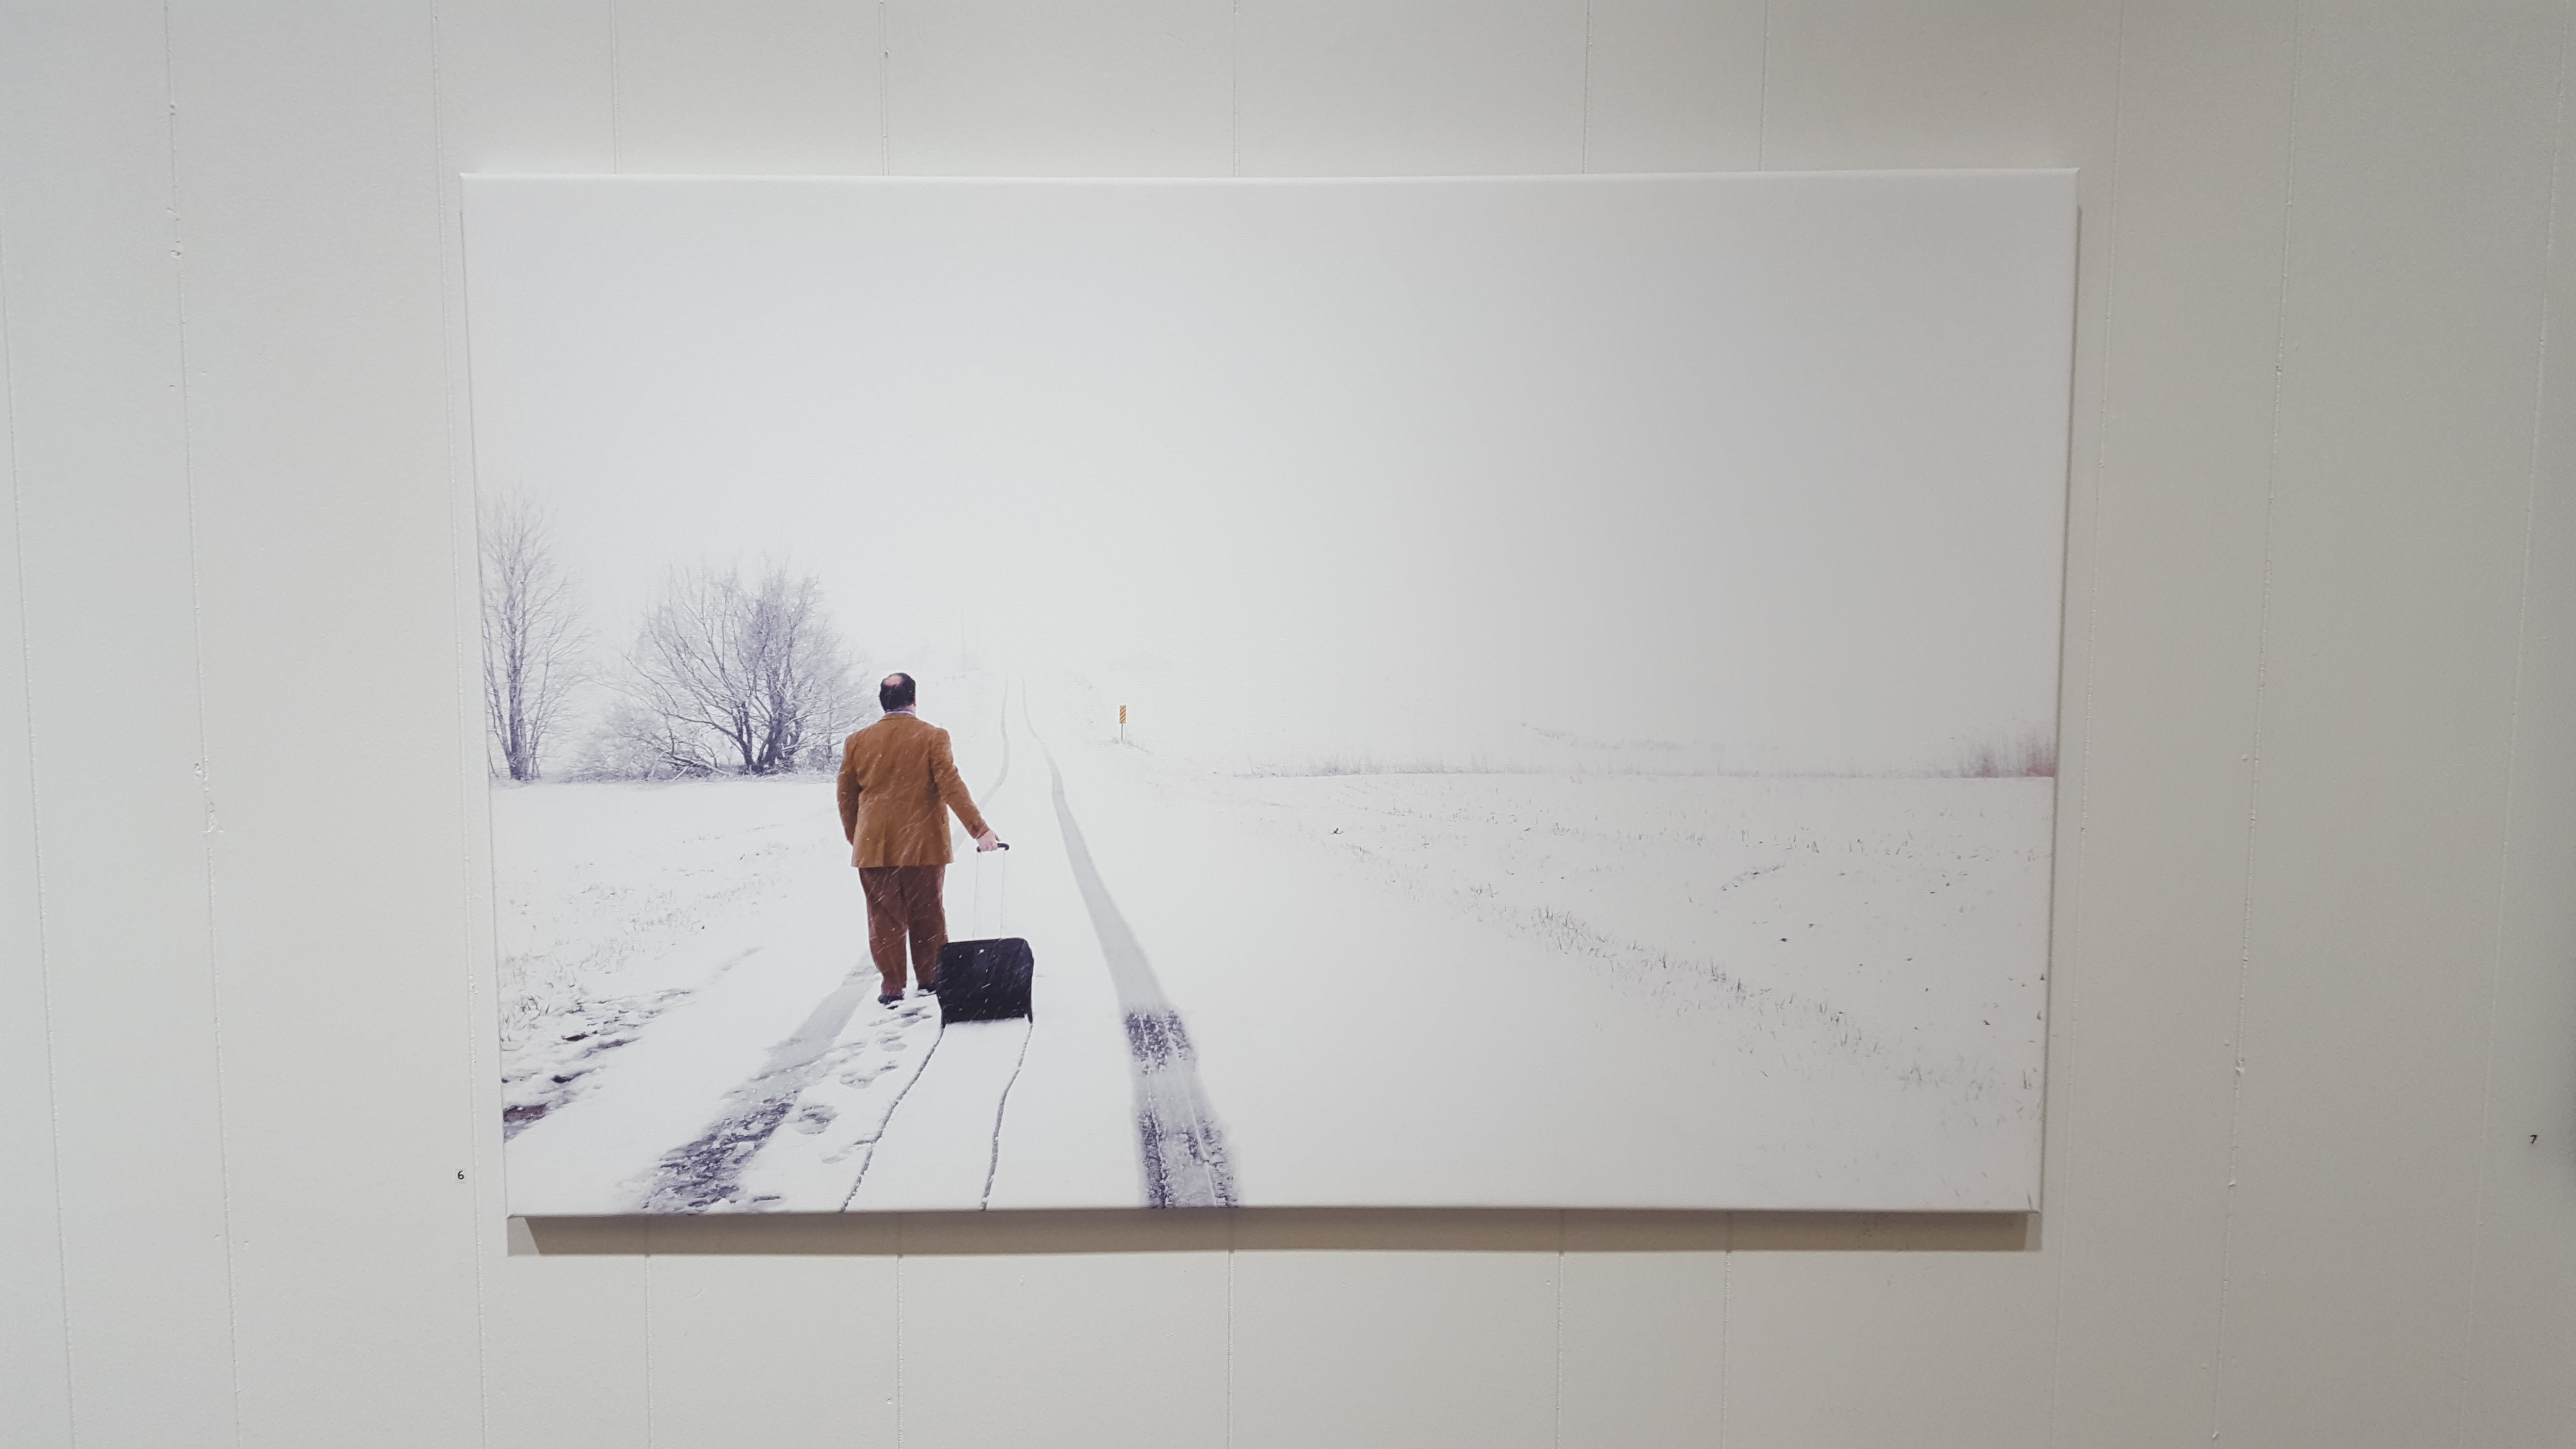 The artist is strolling down a snow covered road in business casual attire, pulling his suitcase behind him. Photo by Ted Diamond. Image courtesy of Edward Breitweiser.